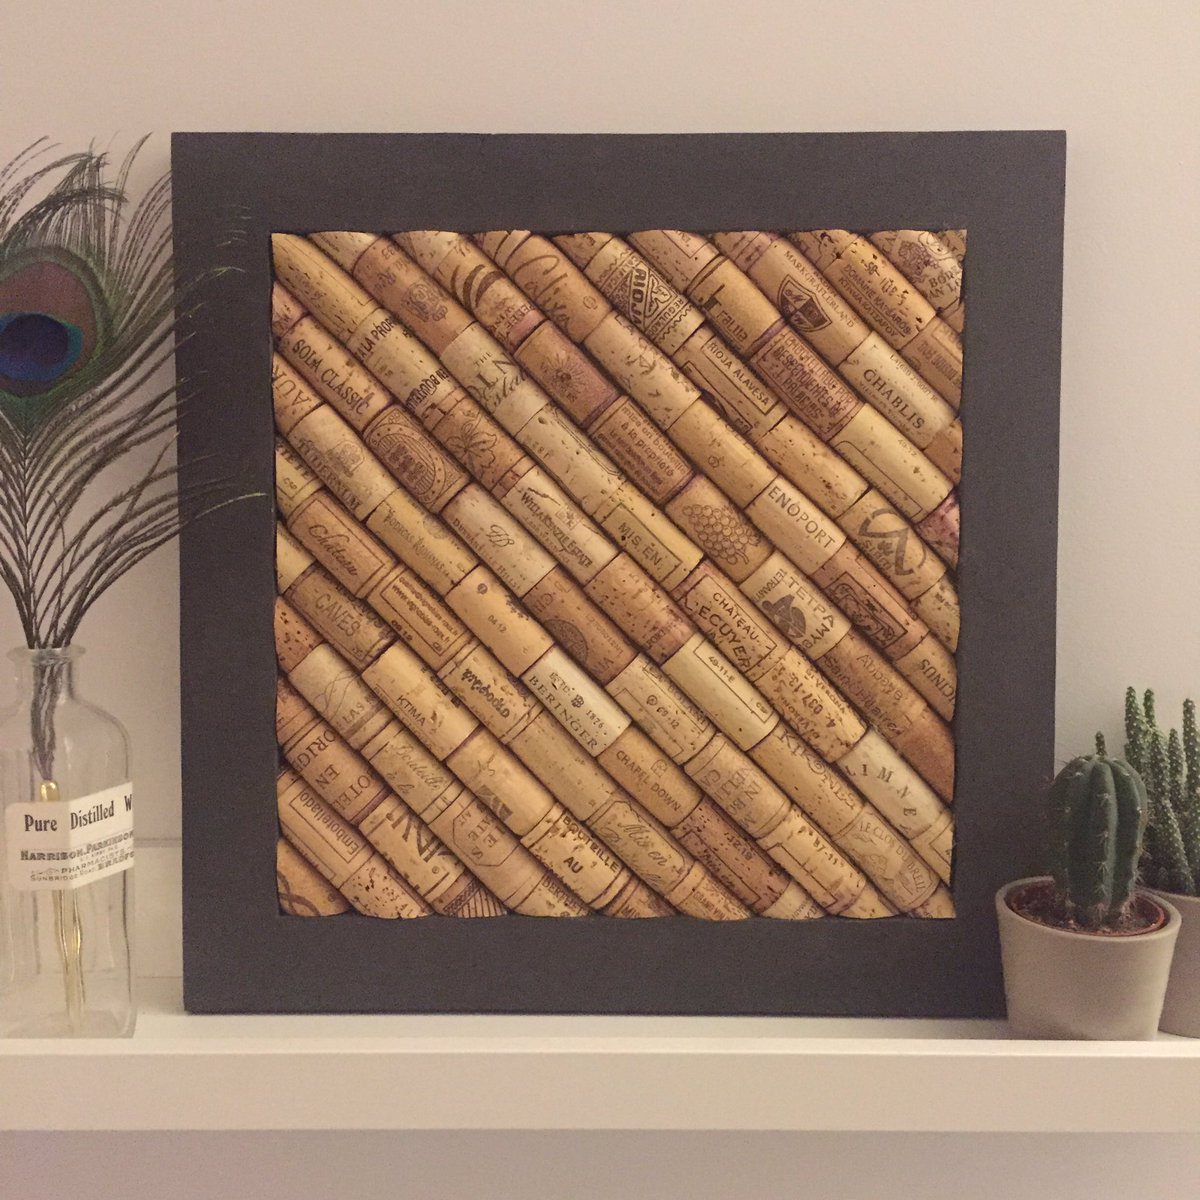 Our new corkboards in partnership with @BeatnikFraming in Liverpool. What do you think? #cork #winecorks #prosecco #corkboard #corkcraft<br>http://pic.twitter.com/CF7km02XQ0